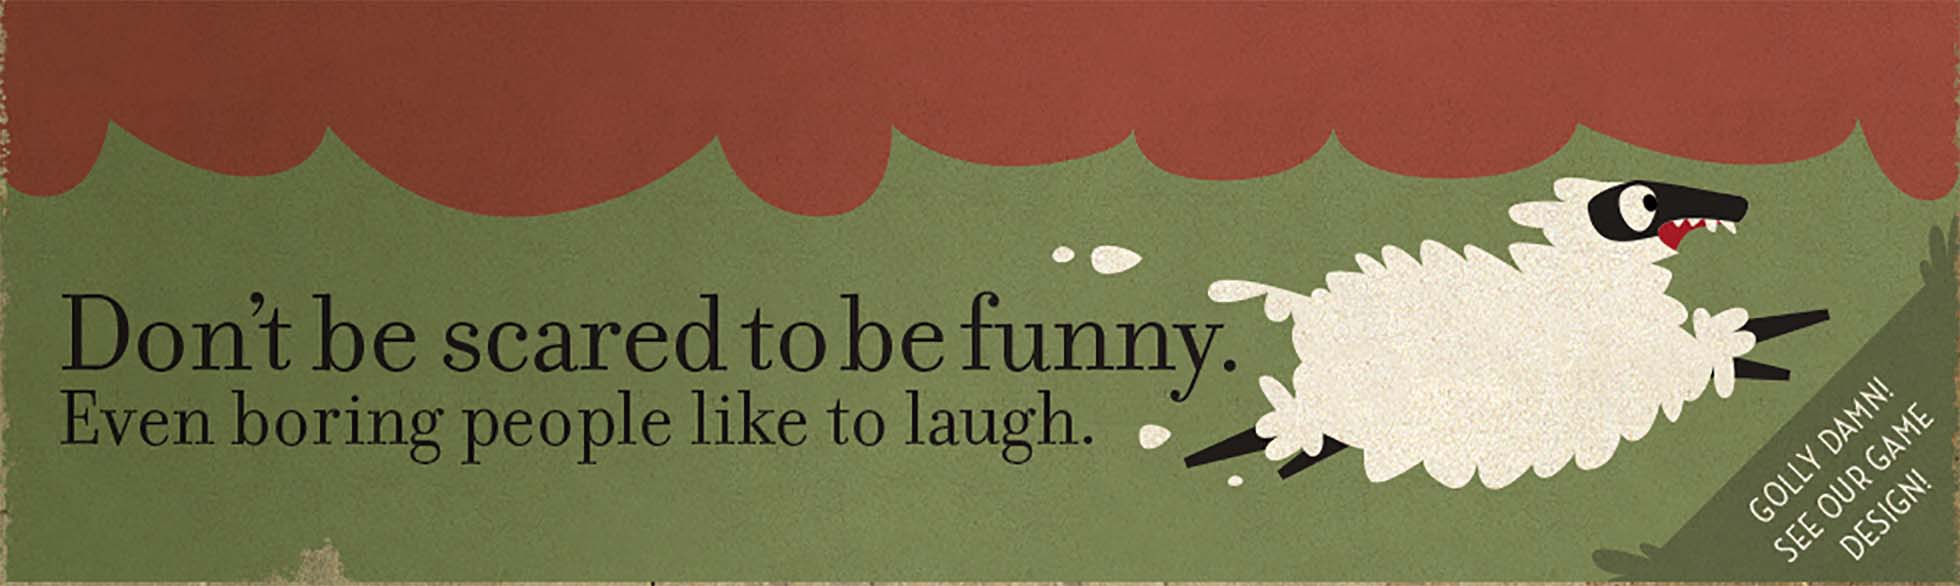 Don't be scared to be funny. Even boring people like to laugh.